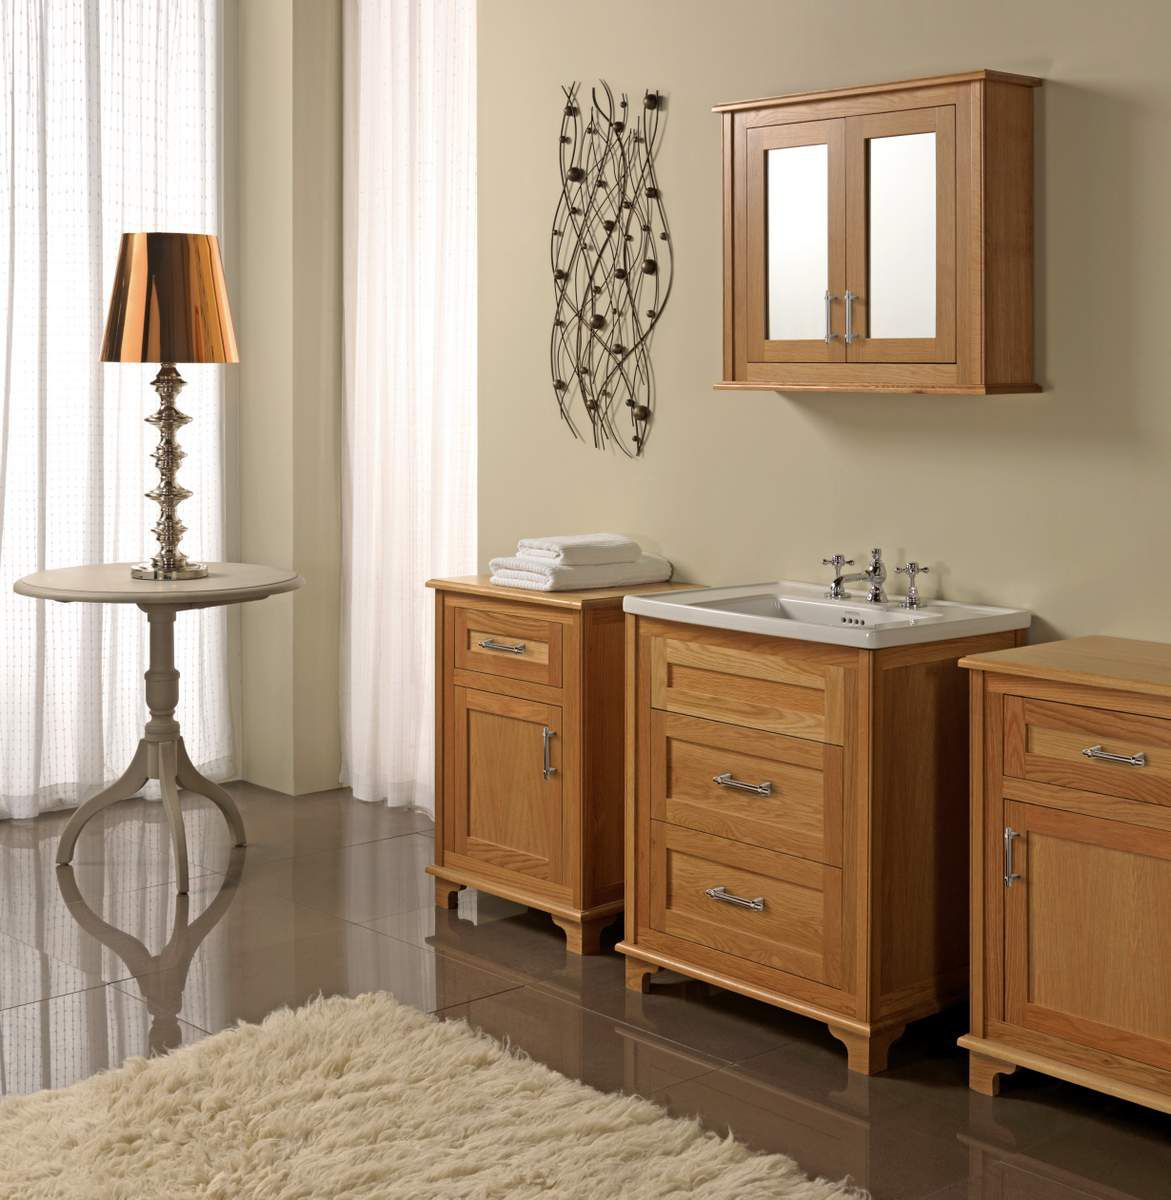 Vanity Units Bathroom Cabinets Both Wall Hung Freestanding With